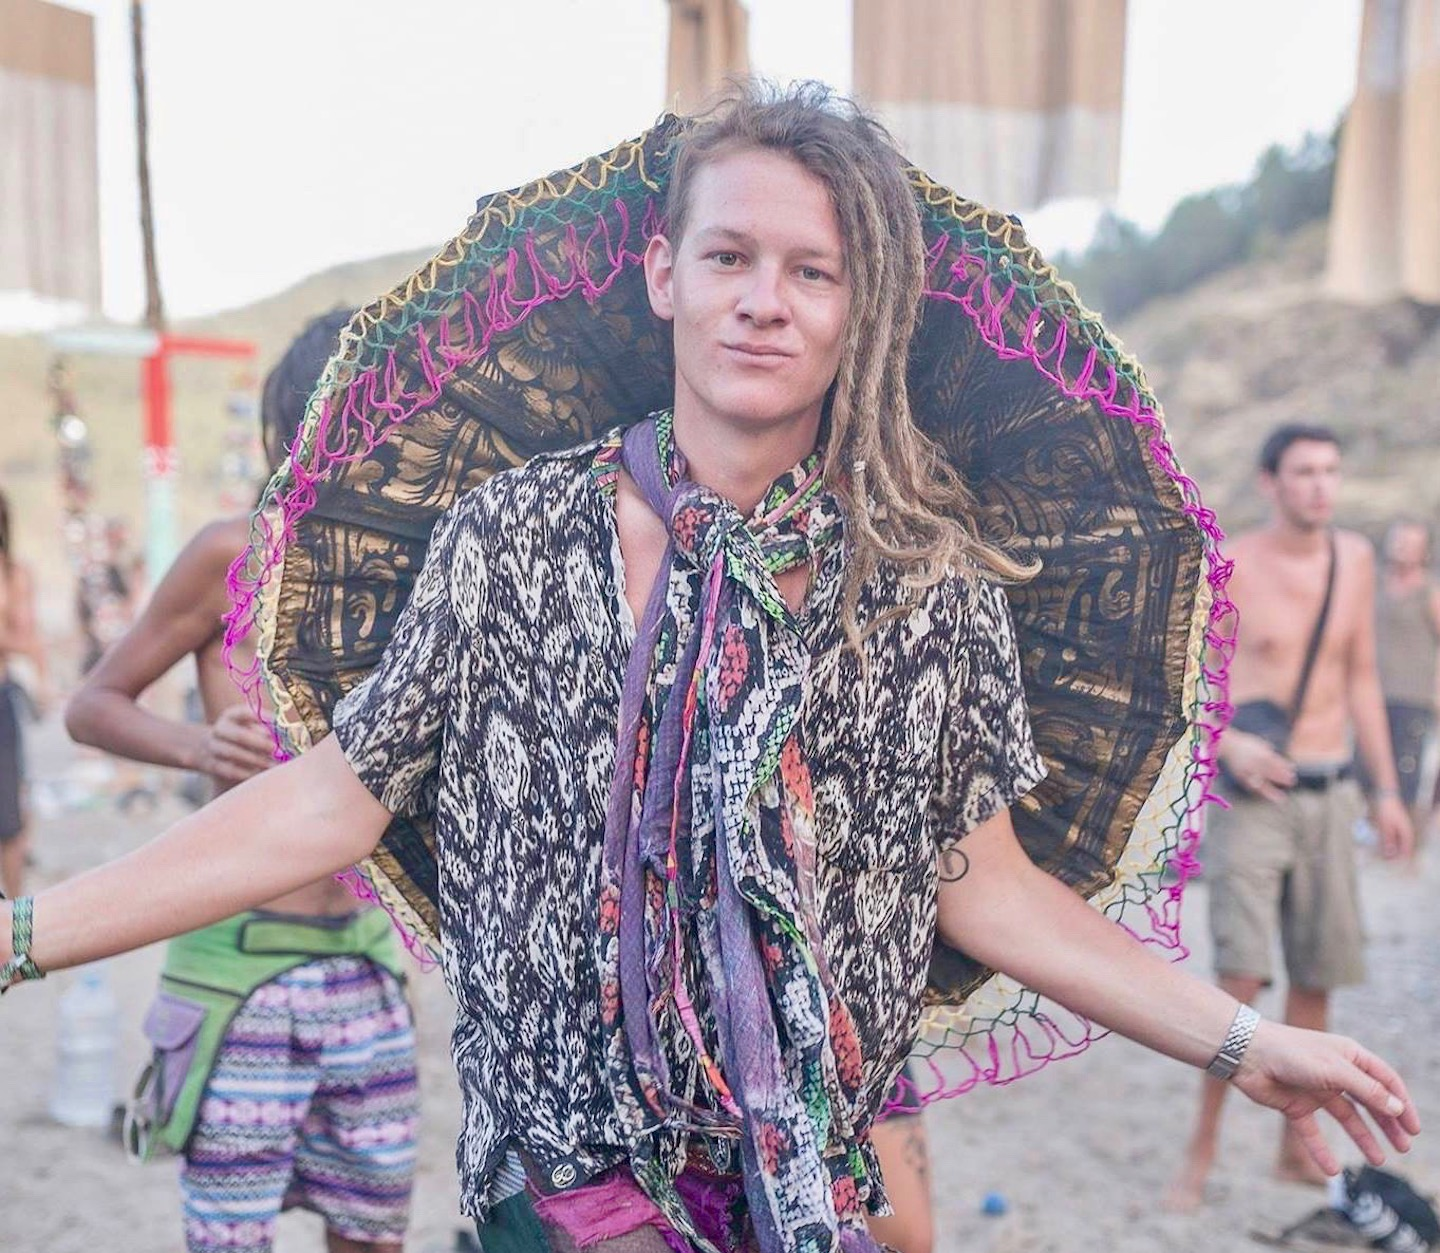 We Asked White People With Dreadlocks Why Vice